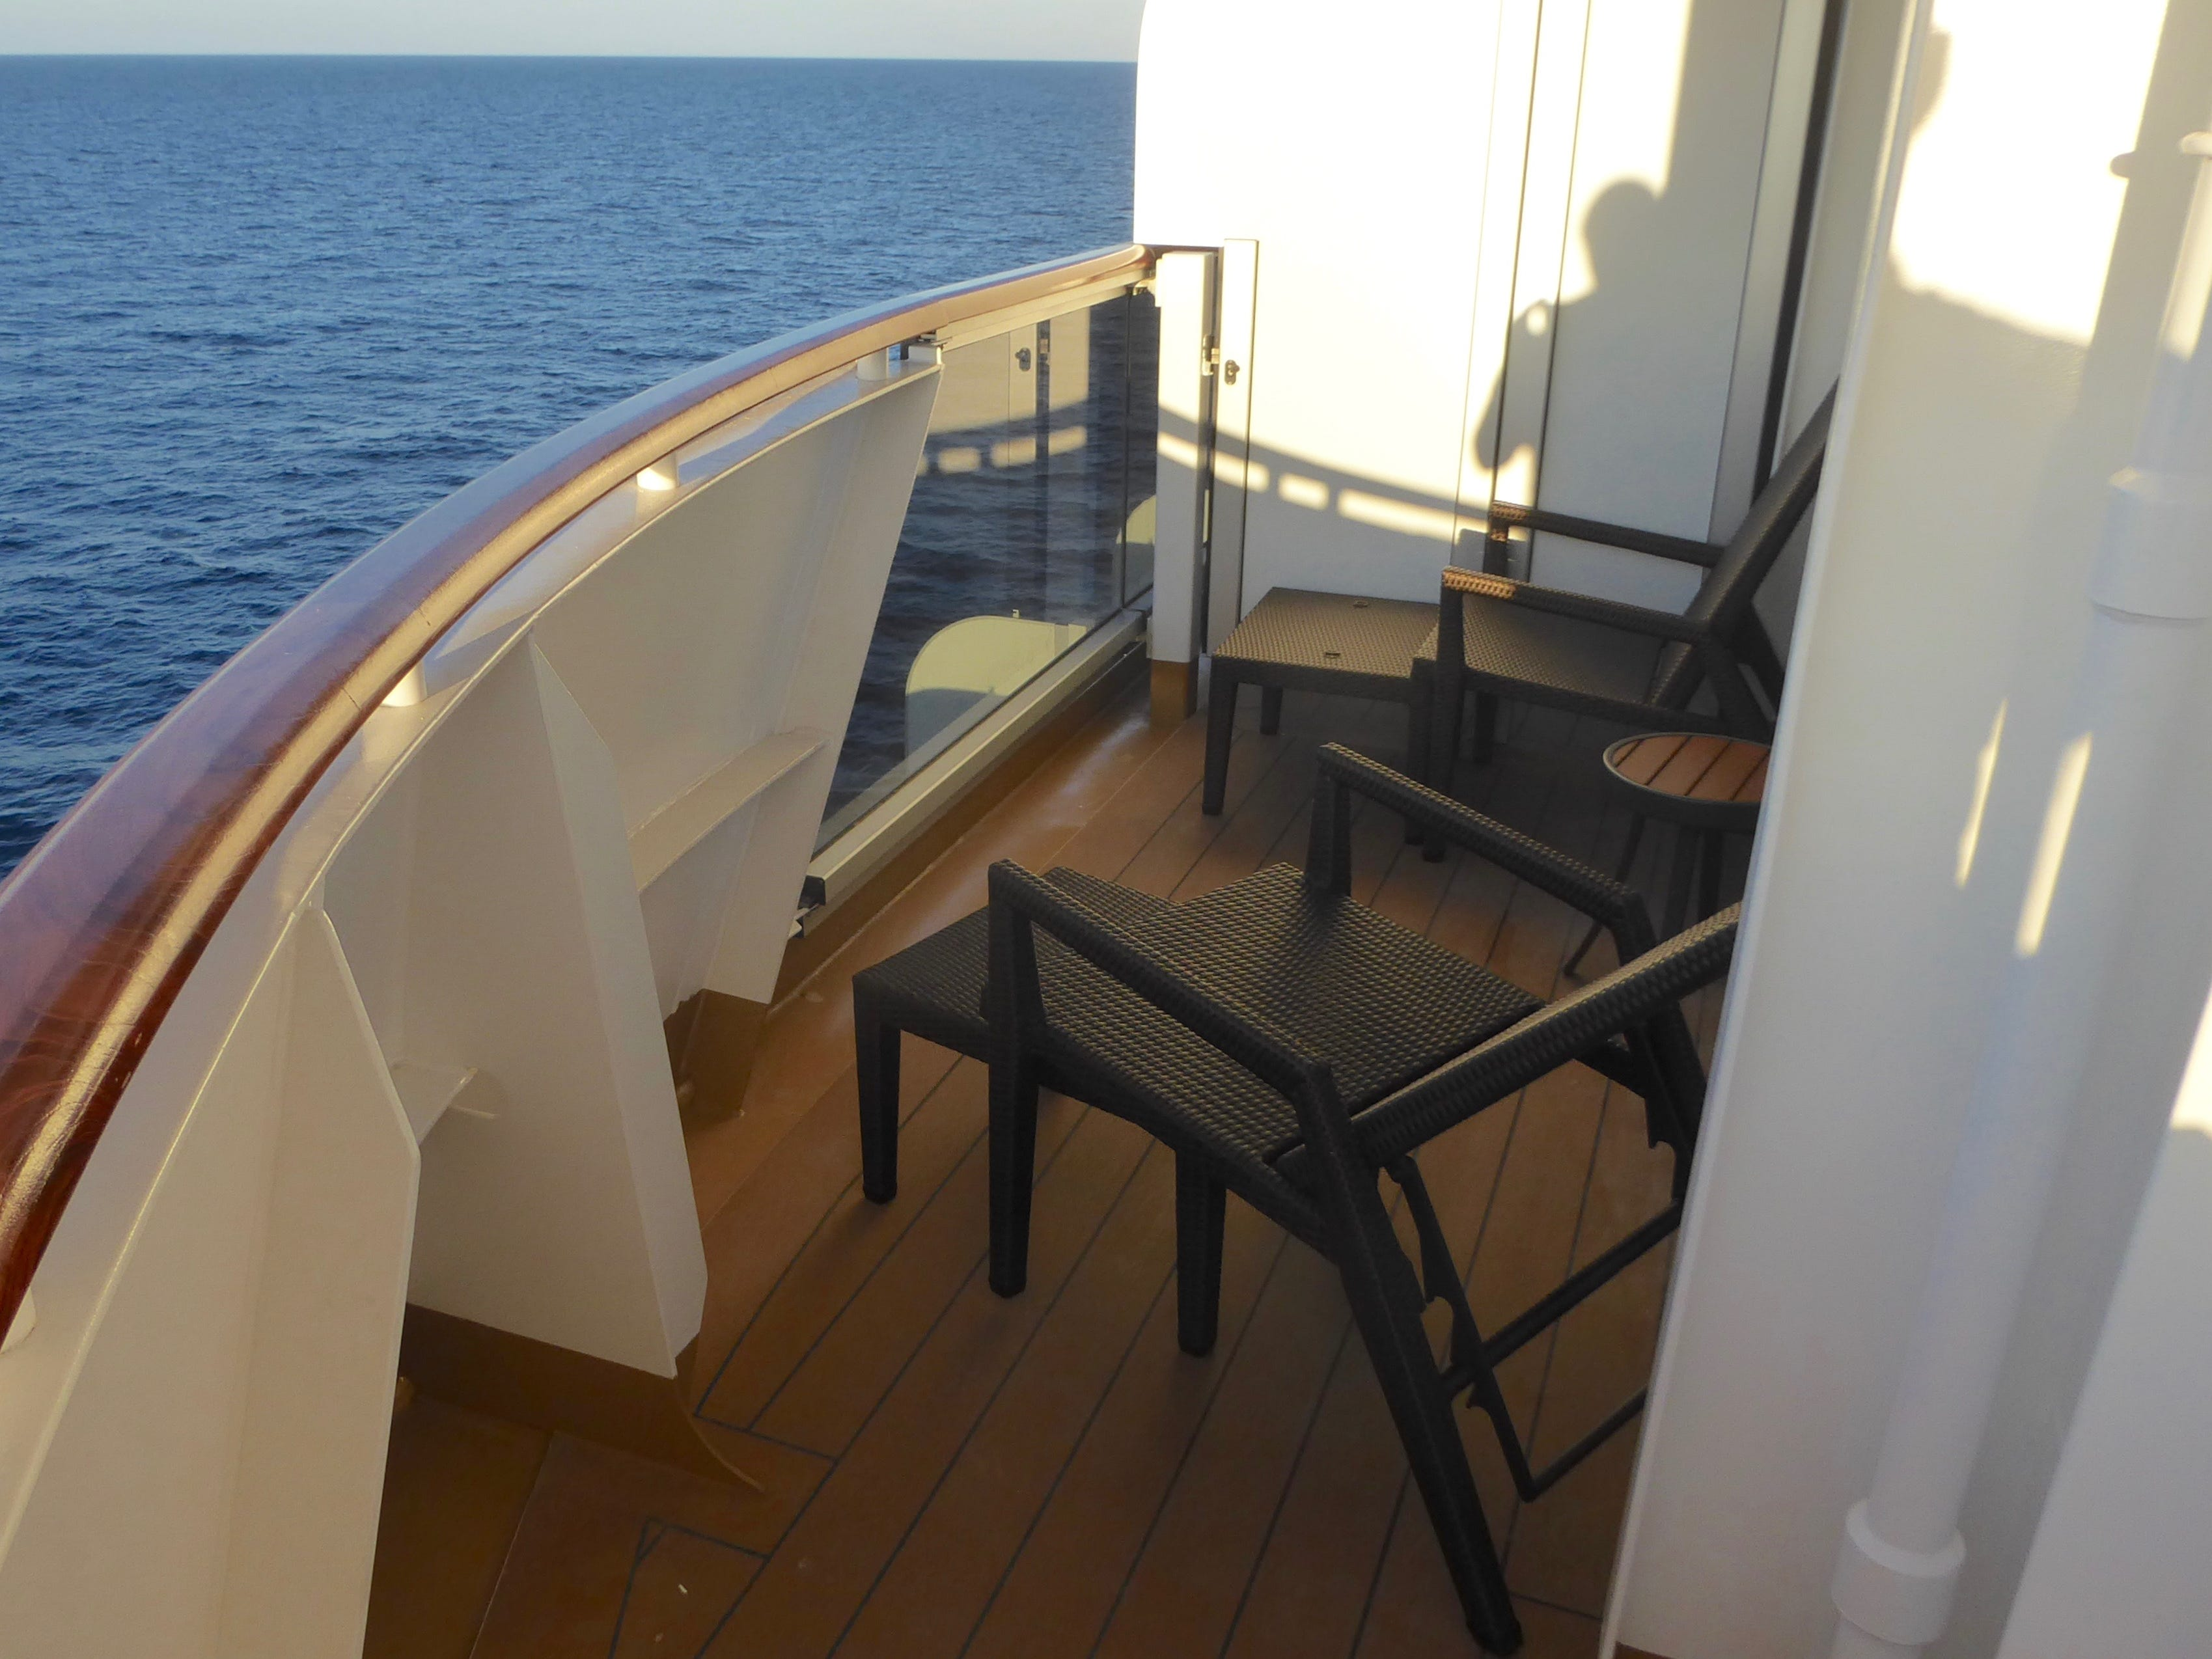 Suite 5001 on forward/starboard Deck 5 has a wrap-around balcony that peers over the ship's bow.